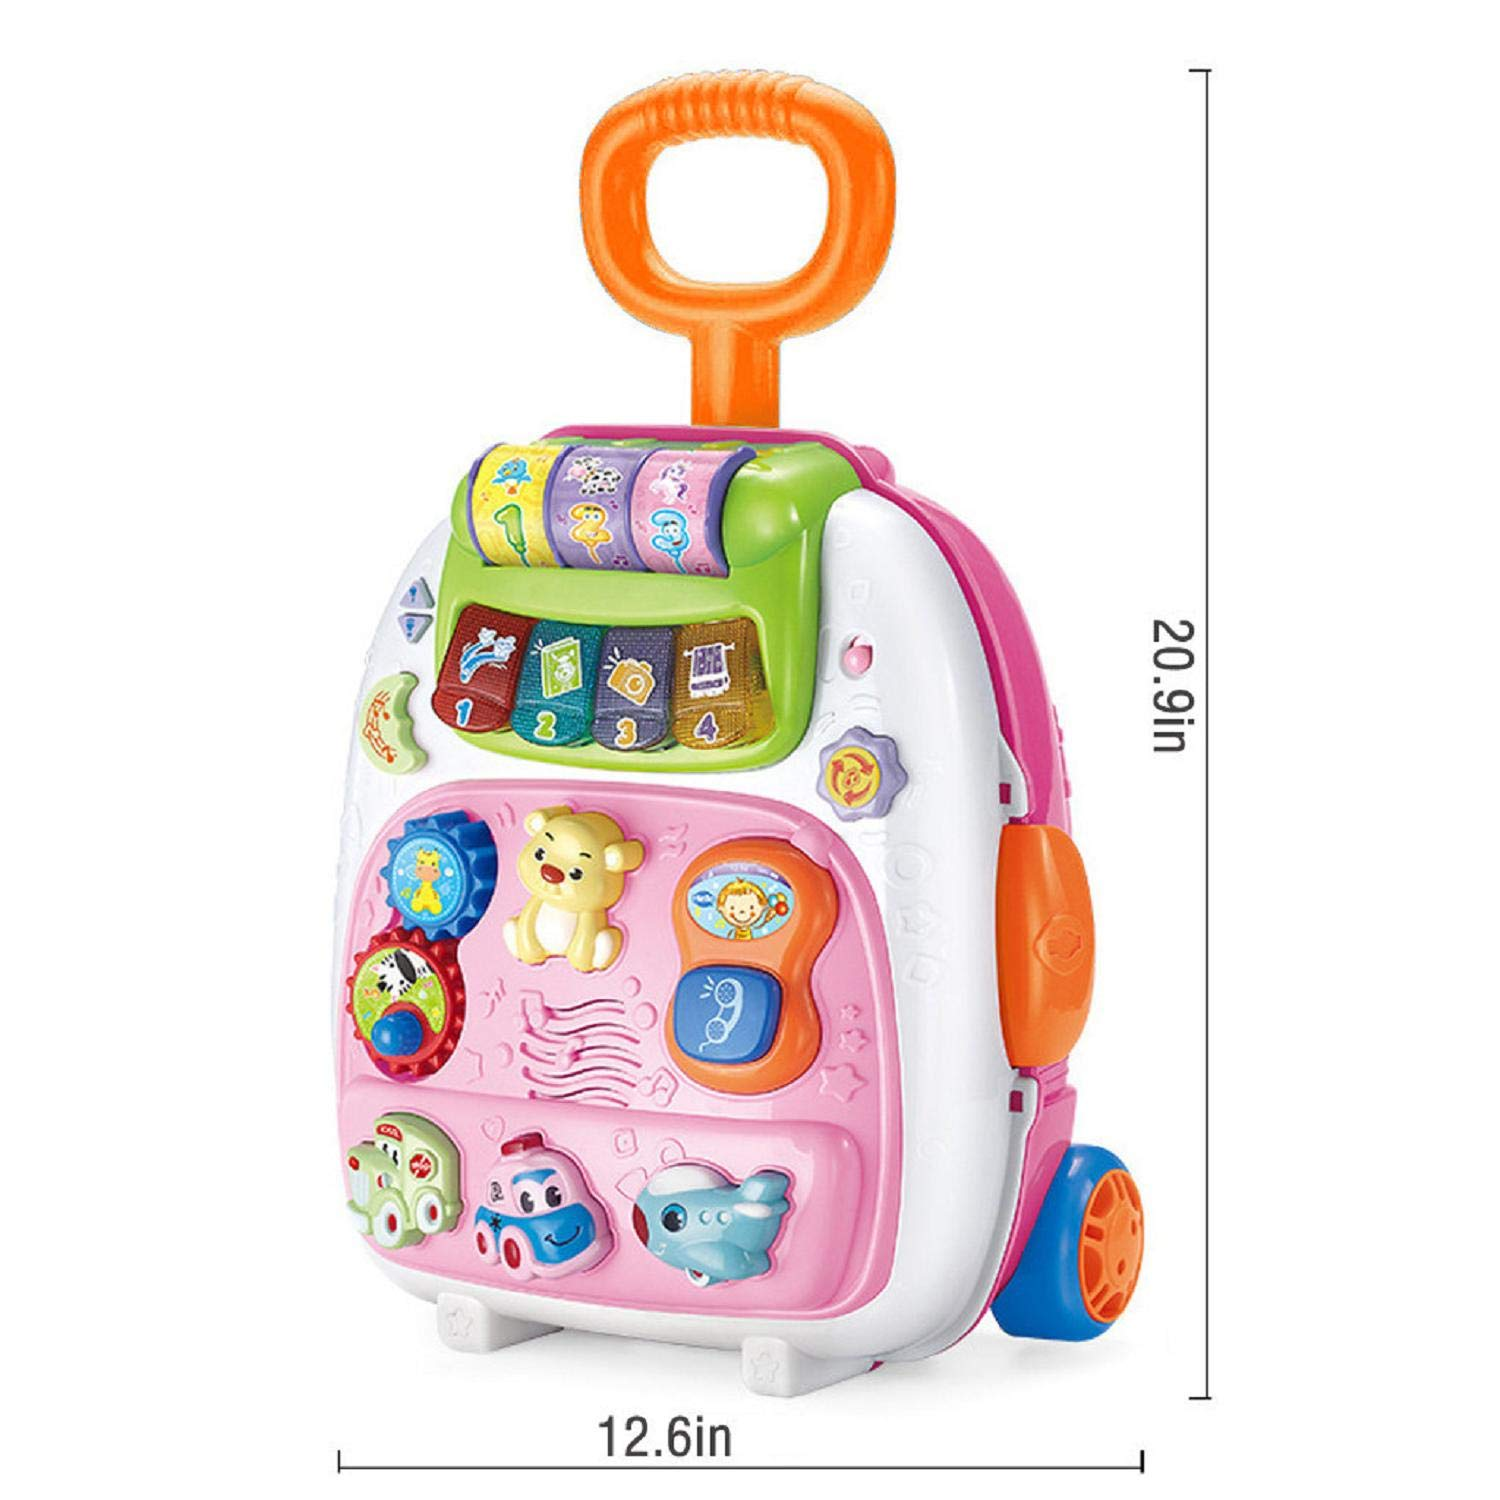 Educational Toy Toddler Trolley Luggage Backpack Playset Kids Multi-Functional Bag Music Toys for Children